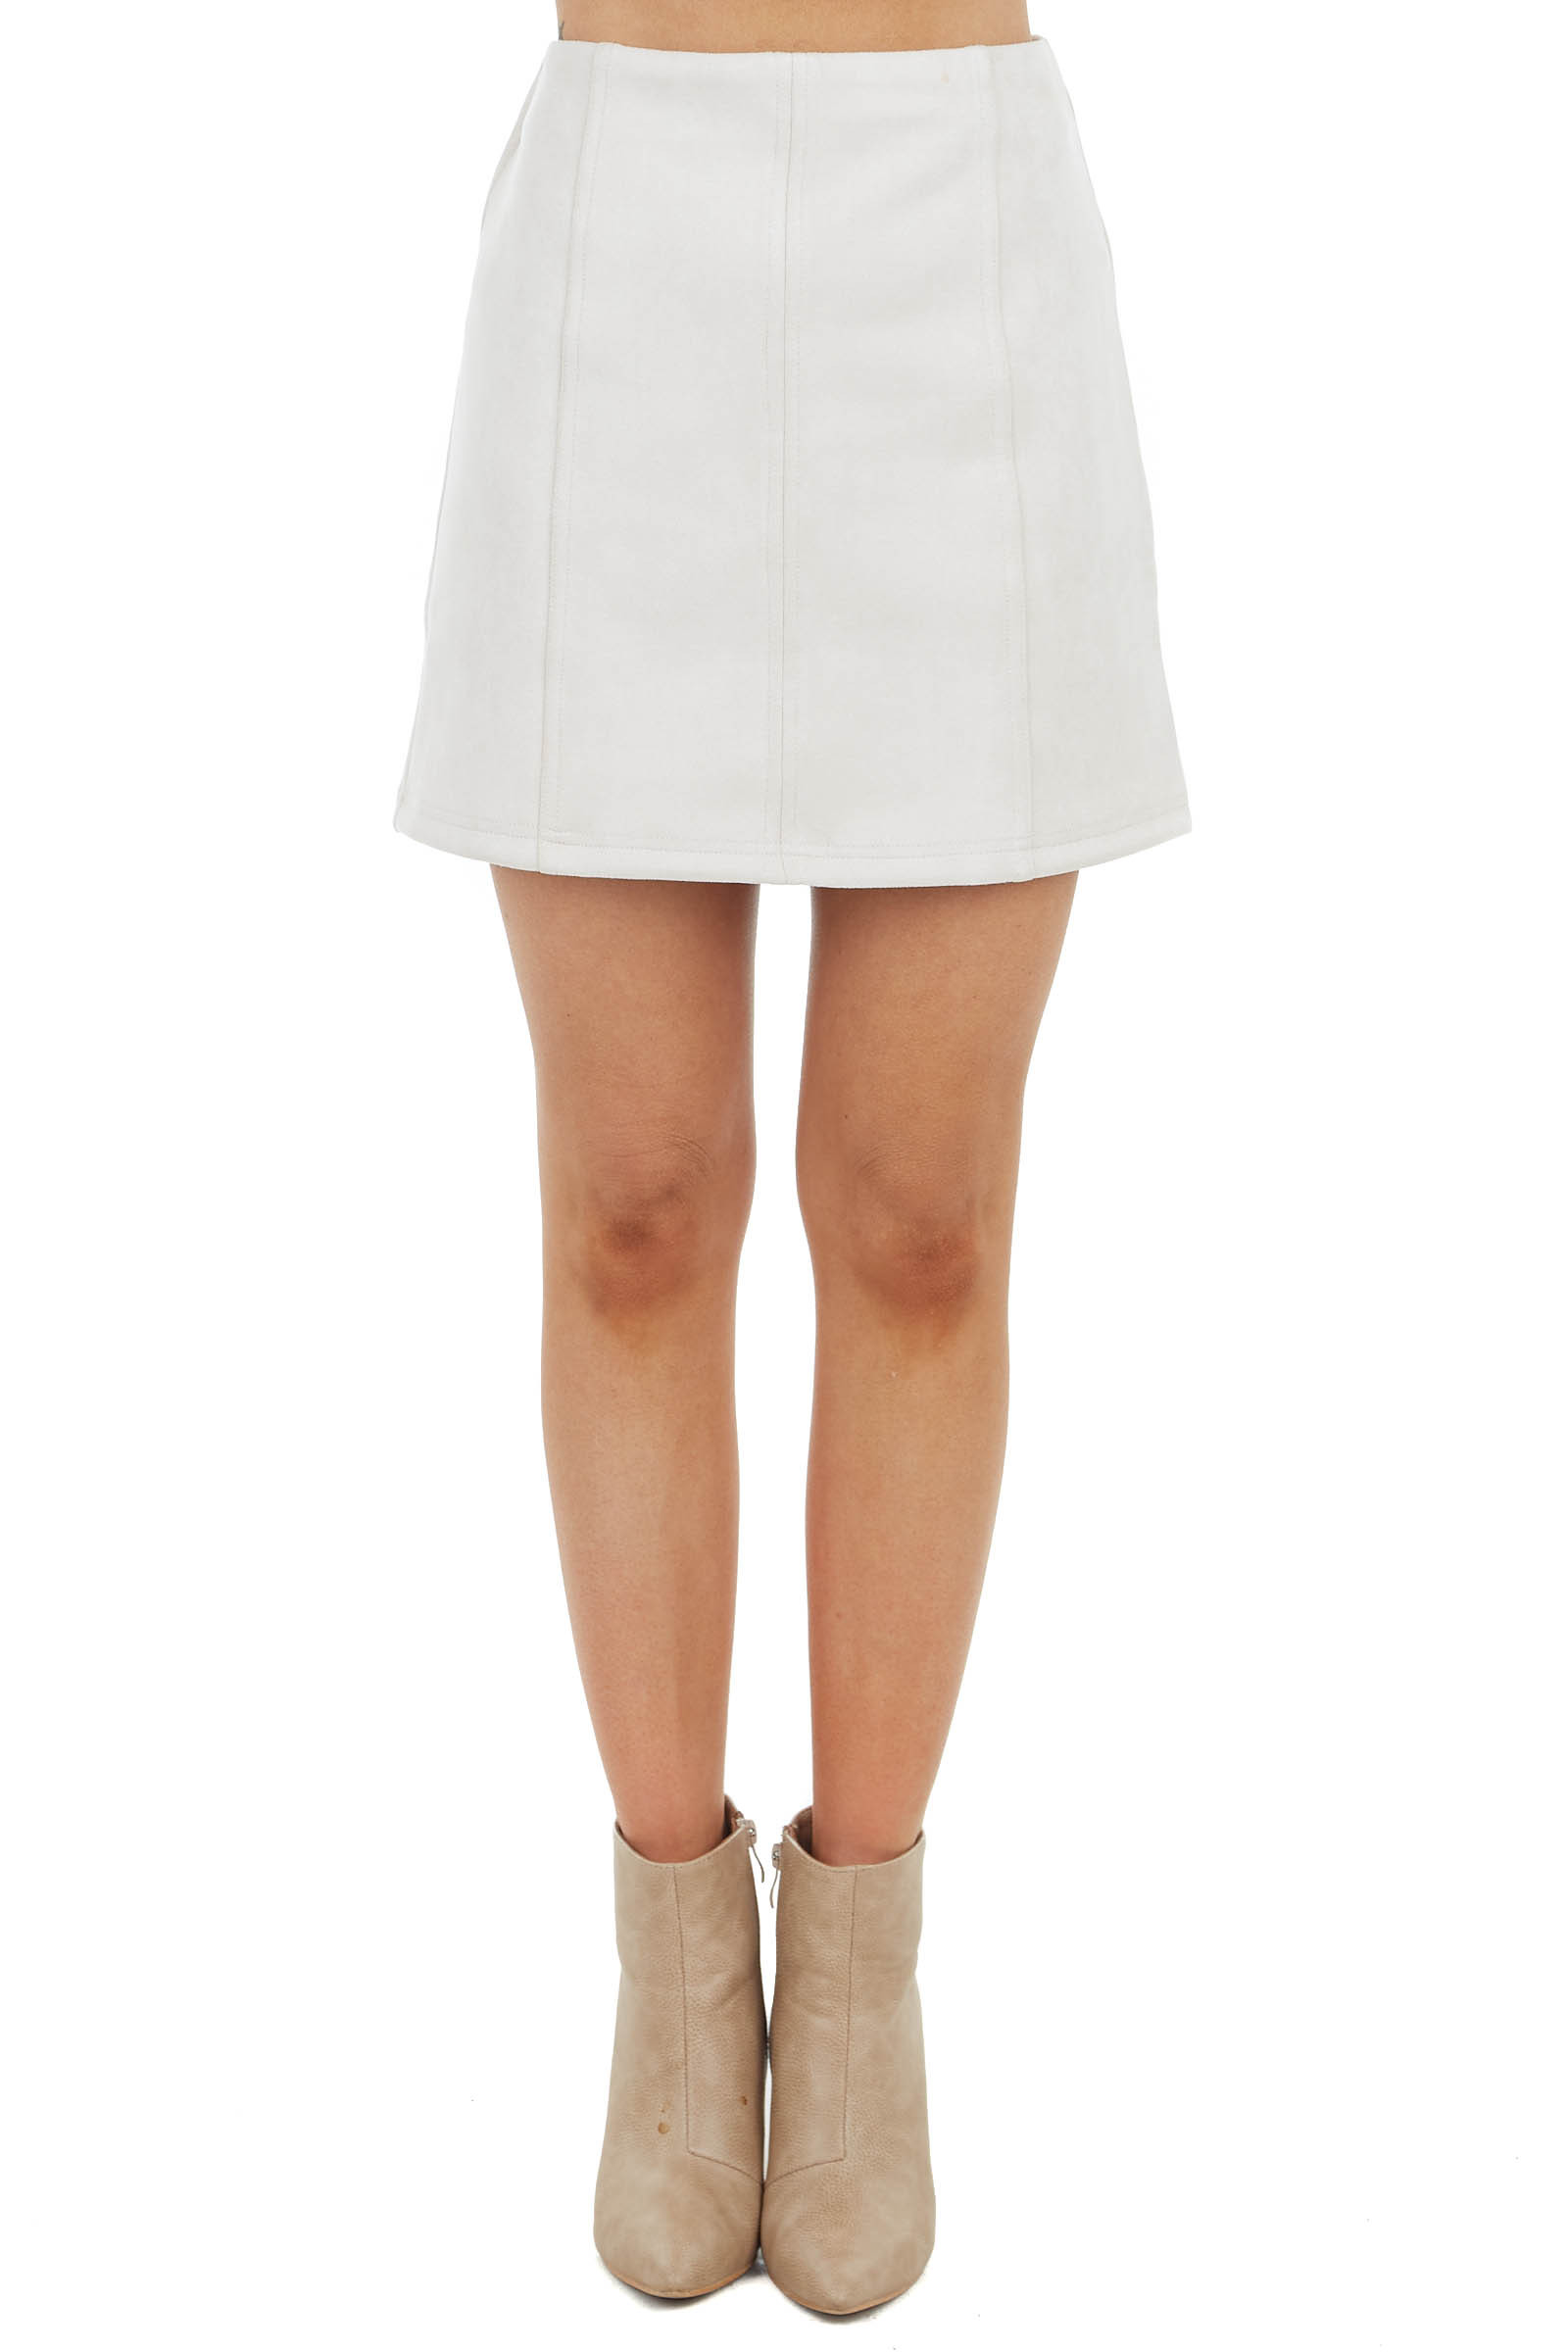 Light Oatmeal Soft Faux Suede Mini Skirt with Seam Details